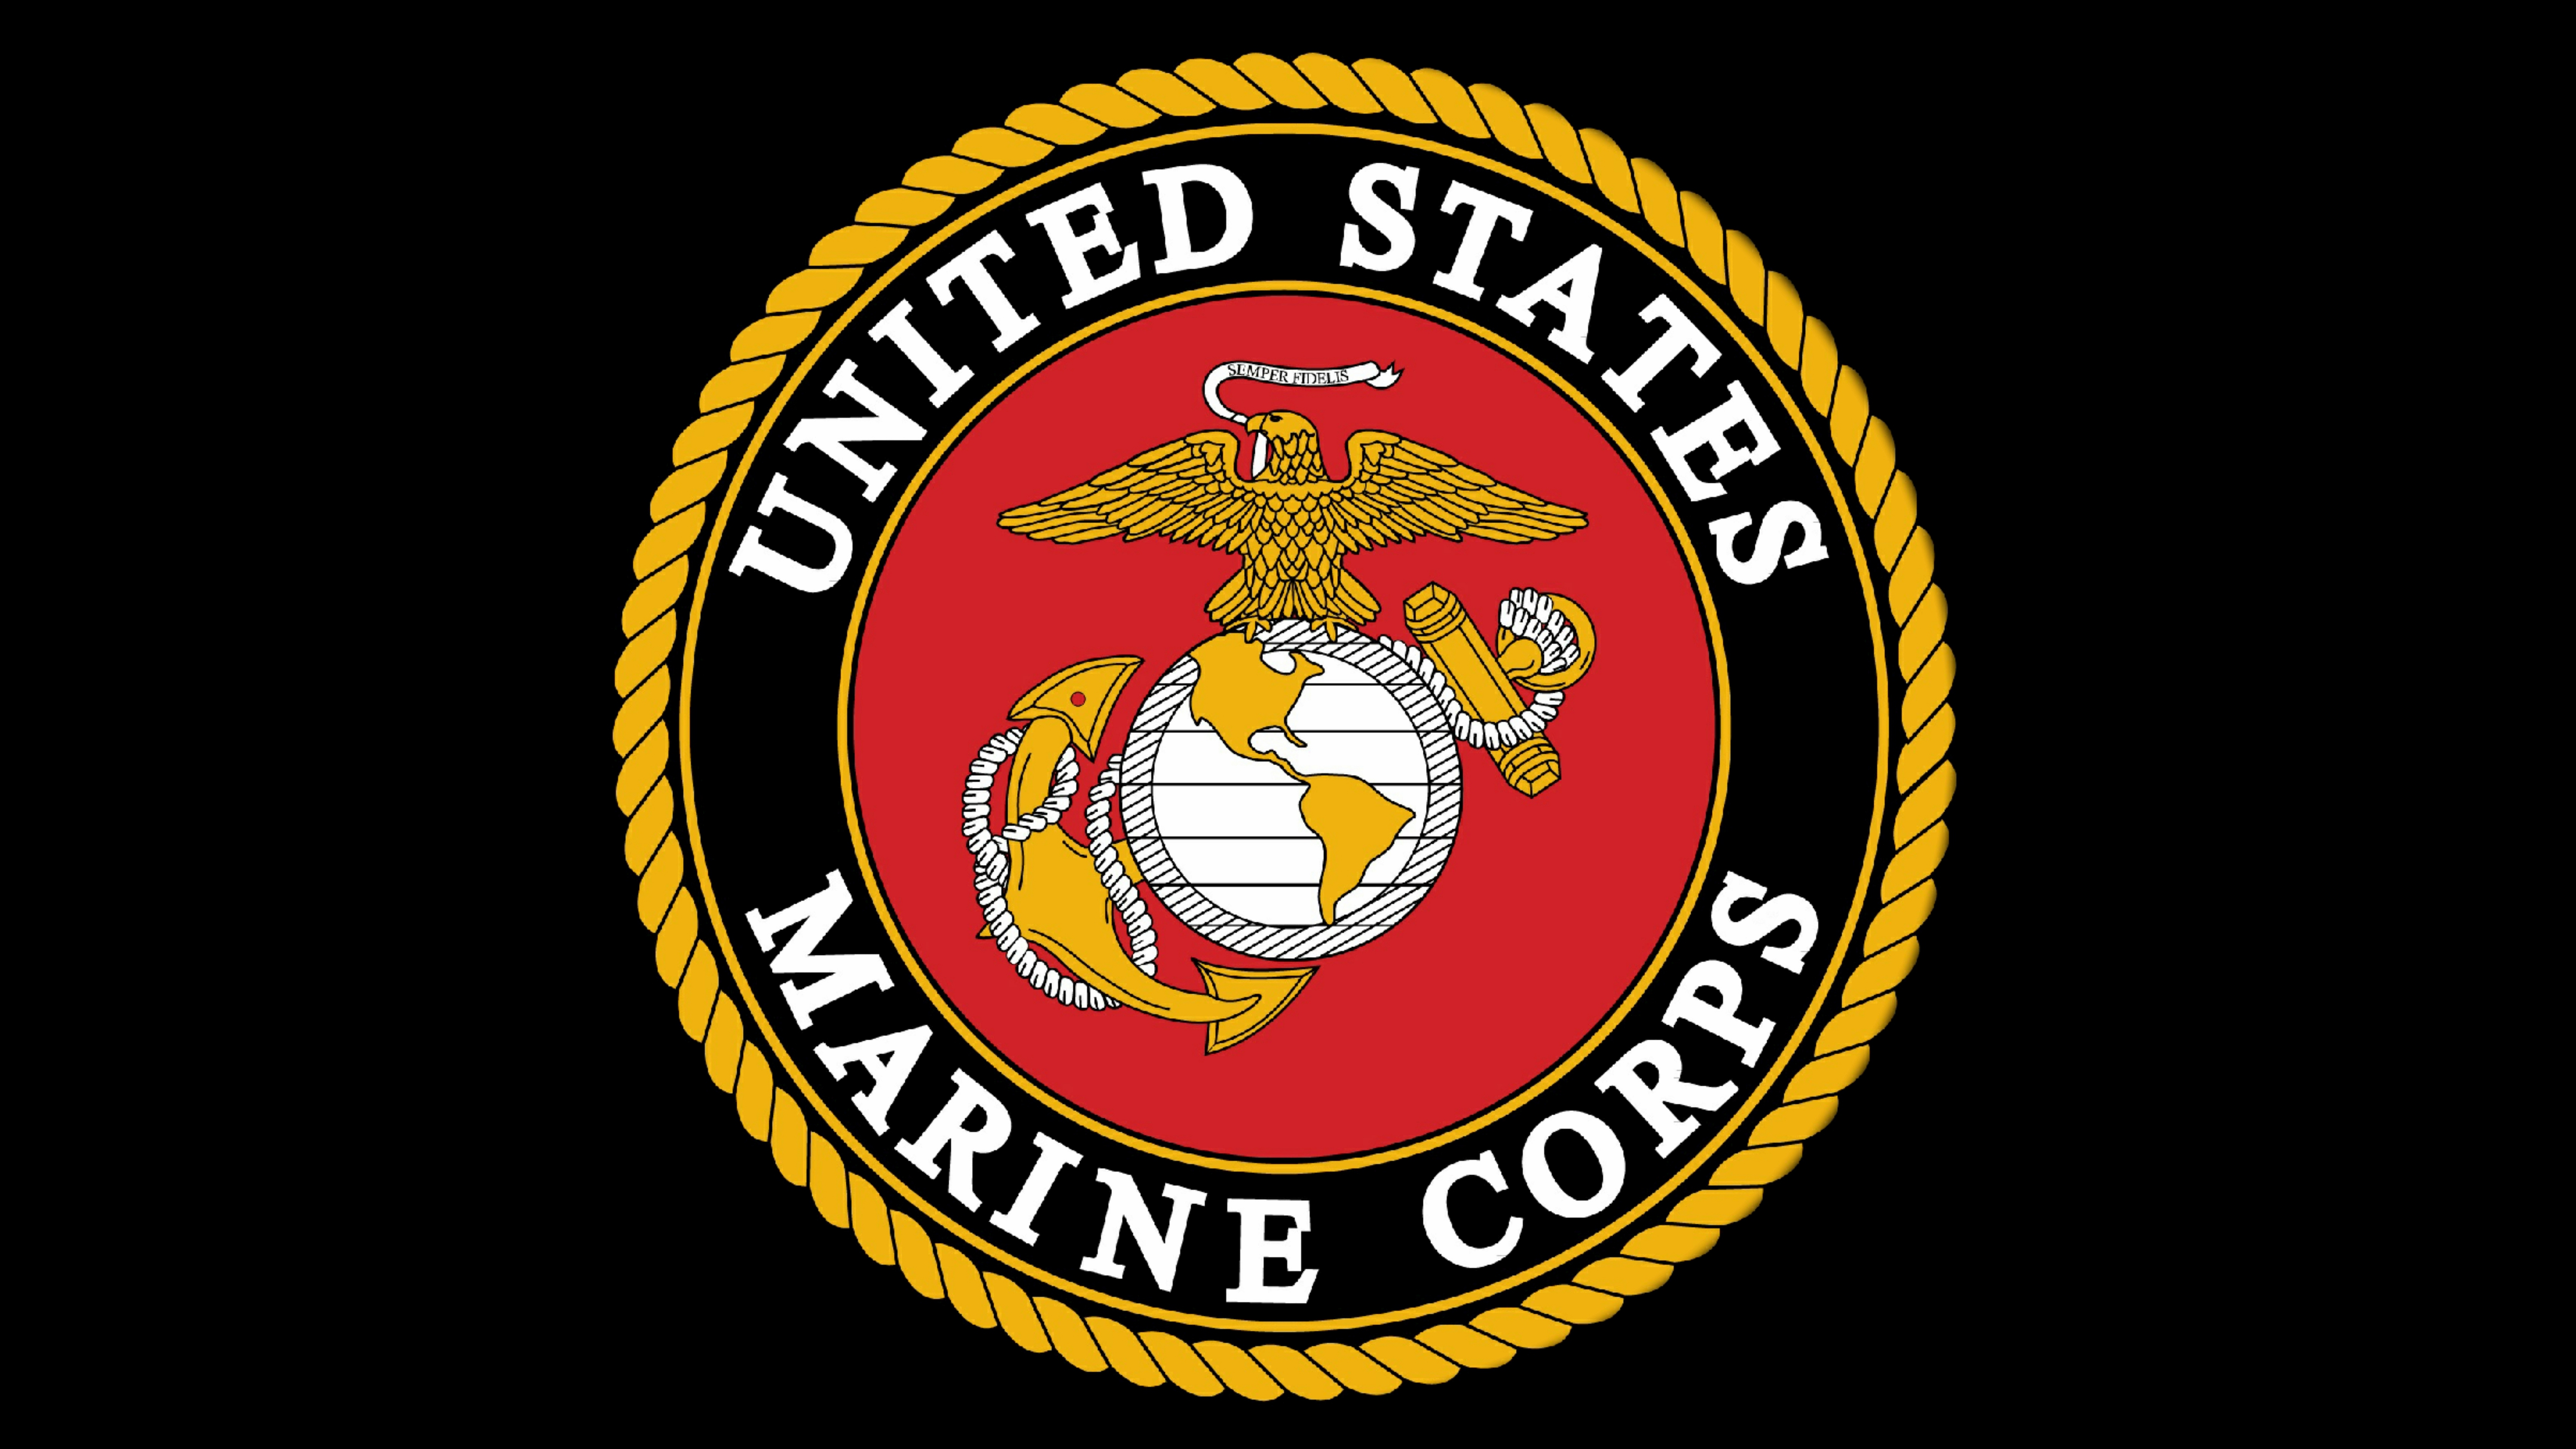 marine corps The only store specifically for marines and their families price matching, catalogs, and our 10+ programs to save you money - click to save now at your marine corps exchange.